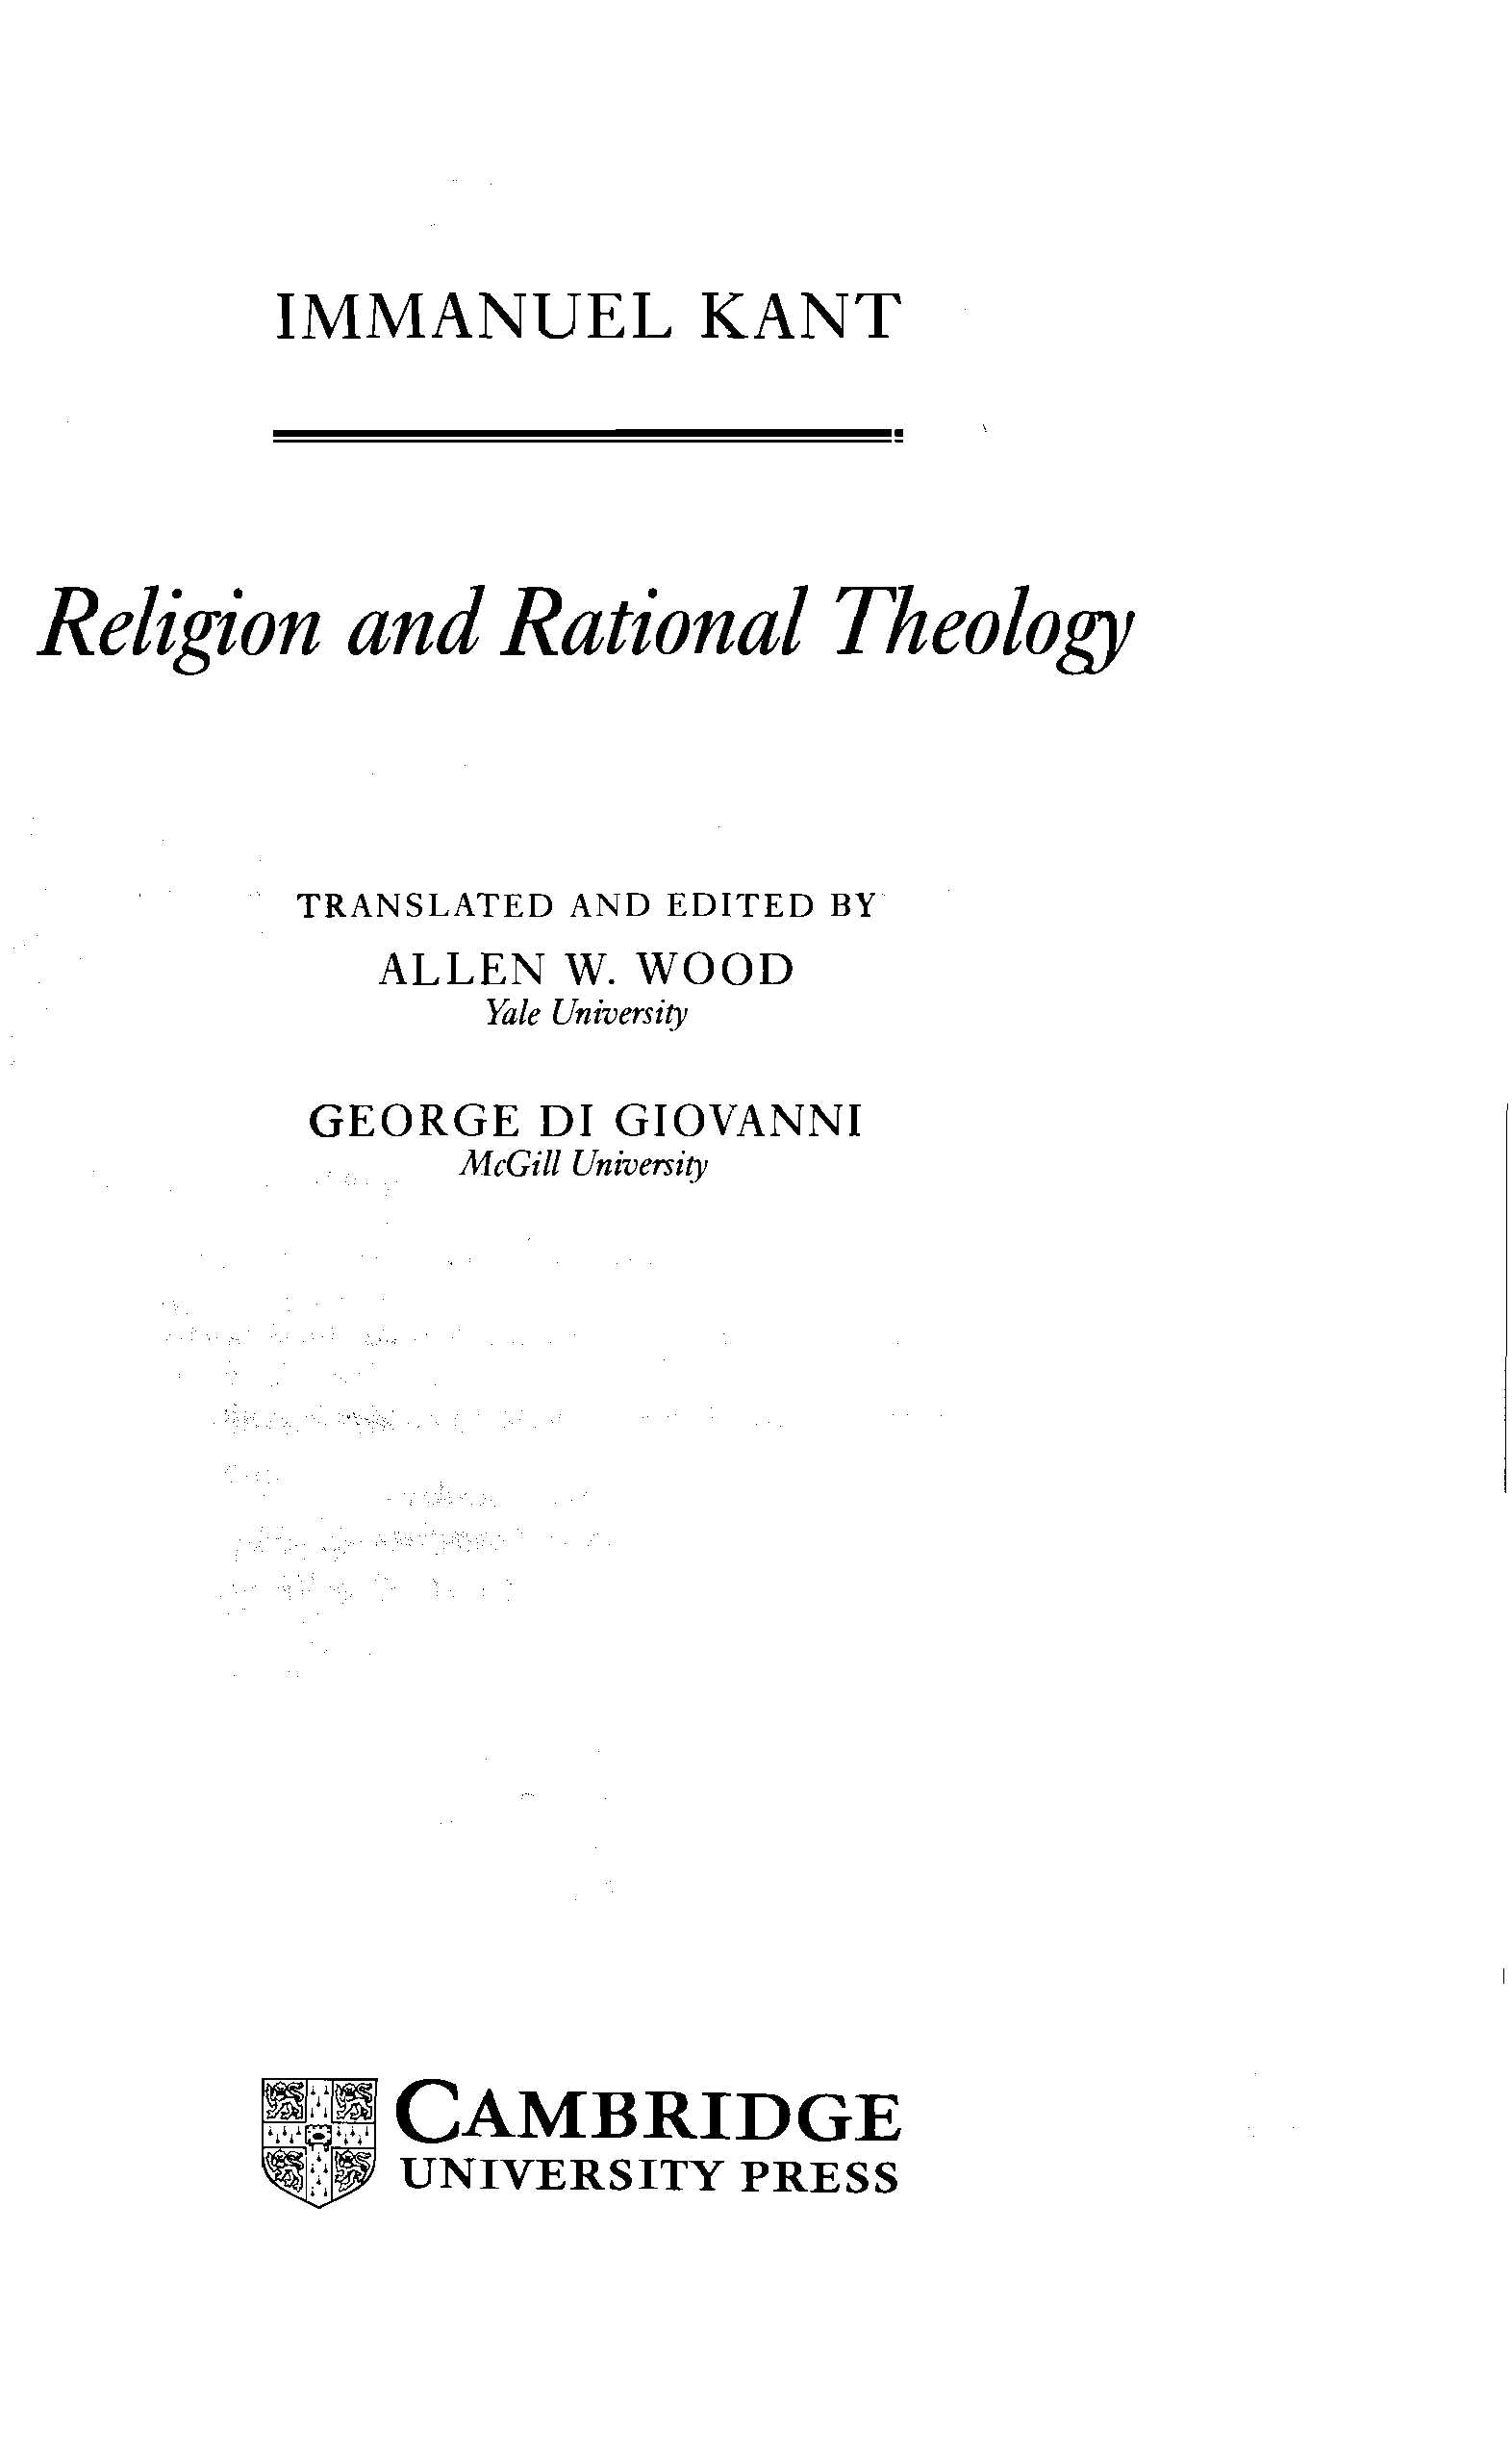 IMMANUEL KANT Religion and Rational Theology TRANSLATED AND EDITED BY ALLEN W.